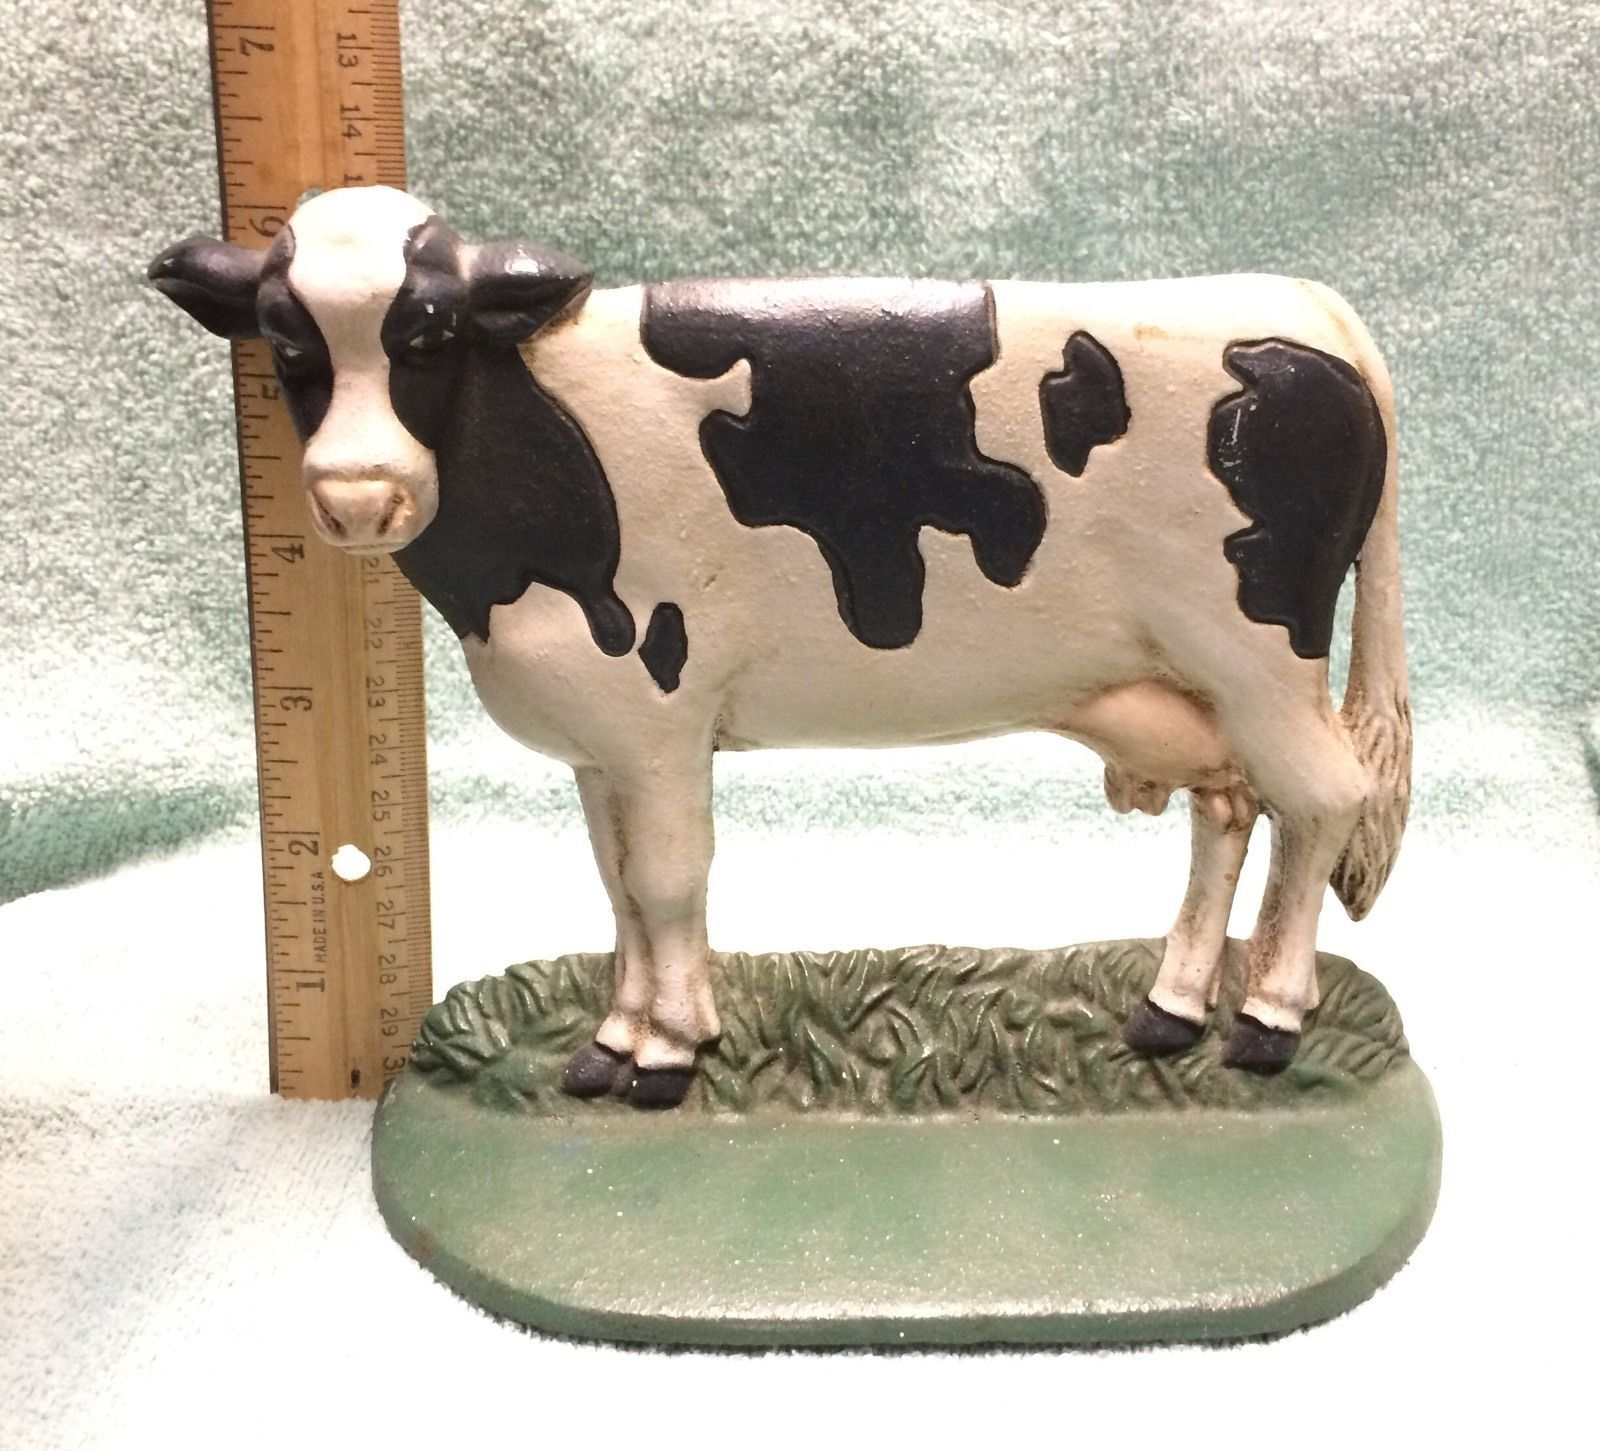 Cast iron door stoppers knockers nautical accents nautical decor - Cast Iron Painted Cow Doorstop Bookend By Midwest Importers Taiwan In Ebay